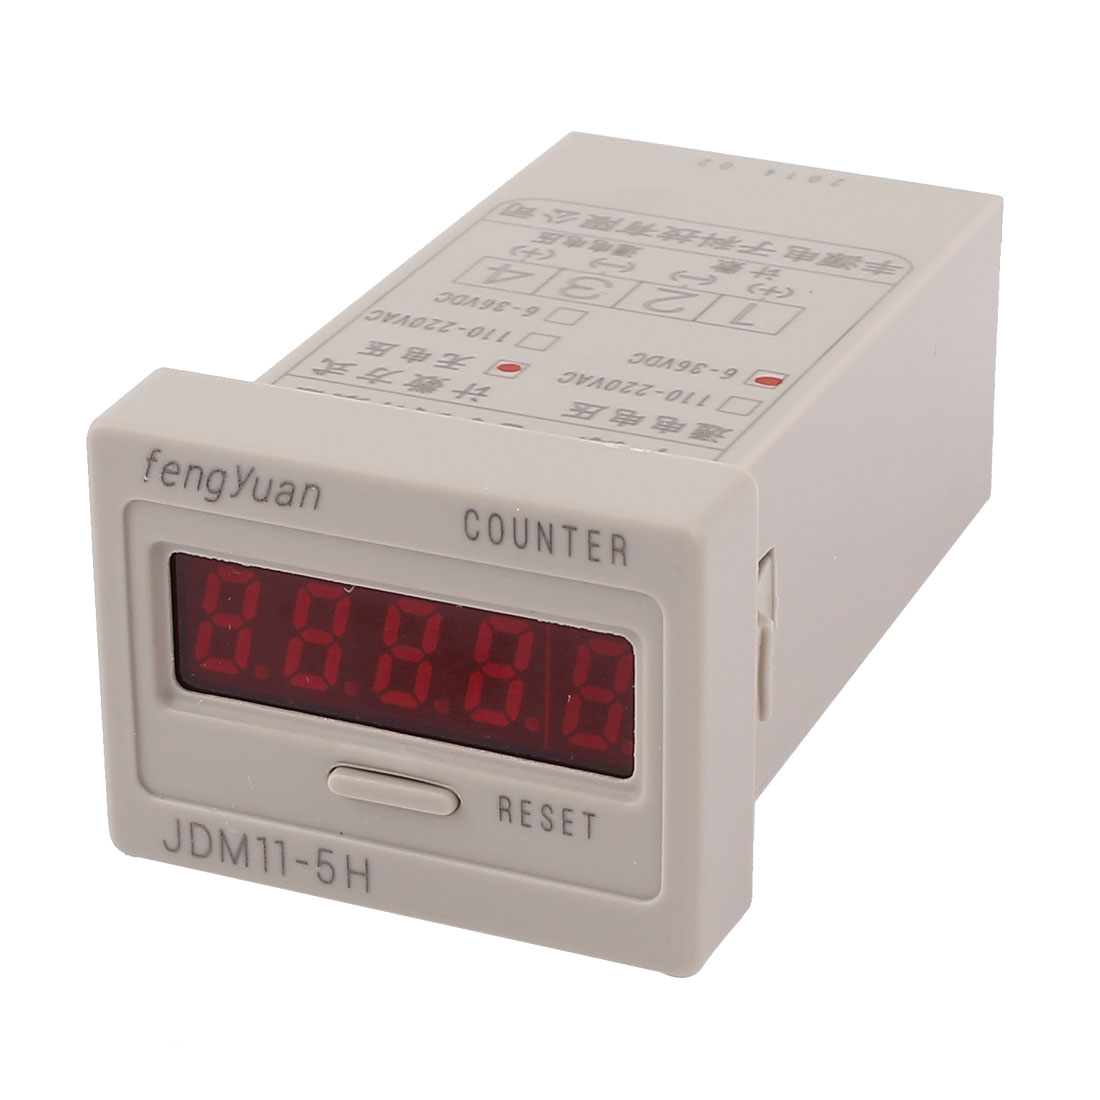 DC 6-36V 0-99999 Counting Range 5 Digit Totalizer Electromagnetic Calculation Press Reset Counter Tool